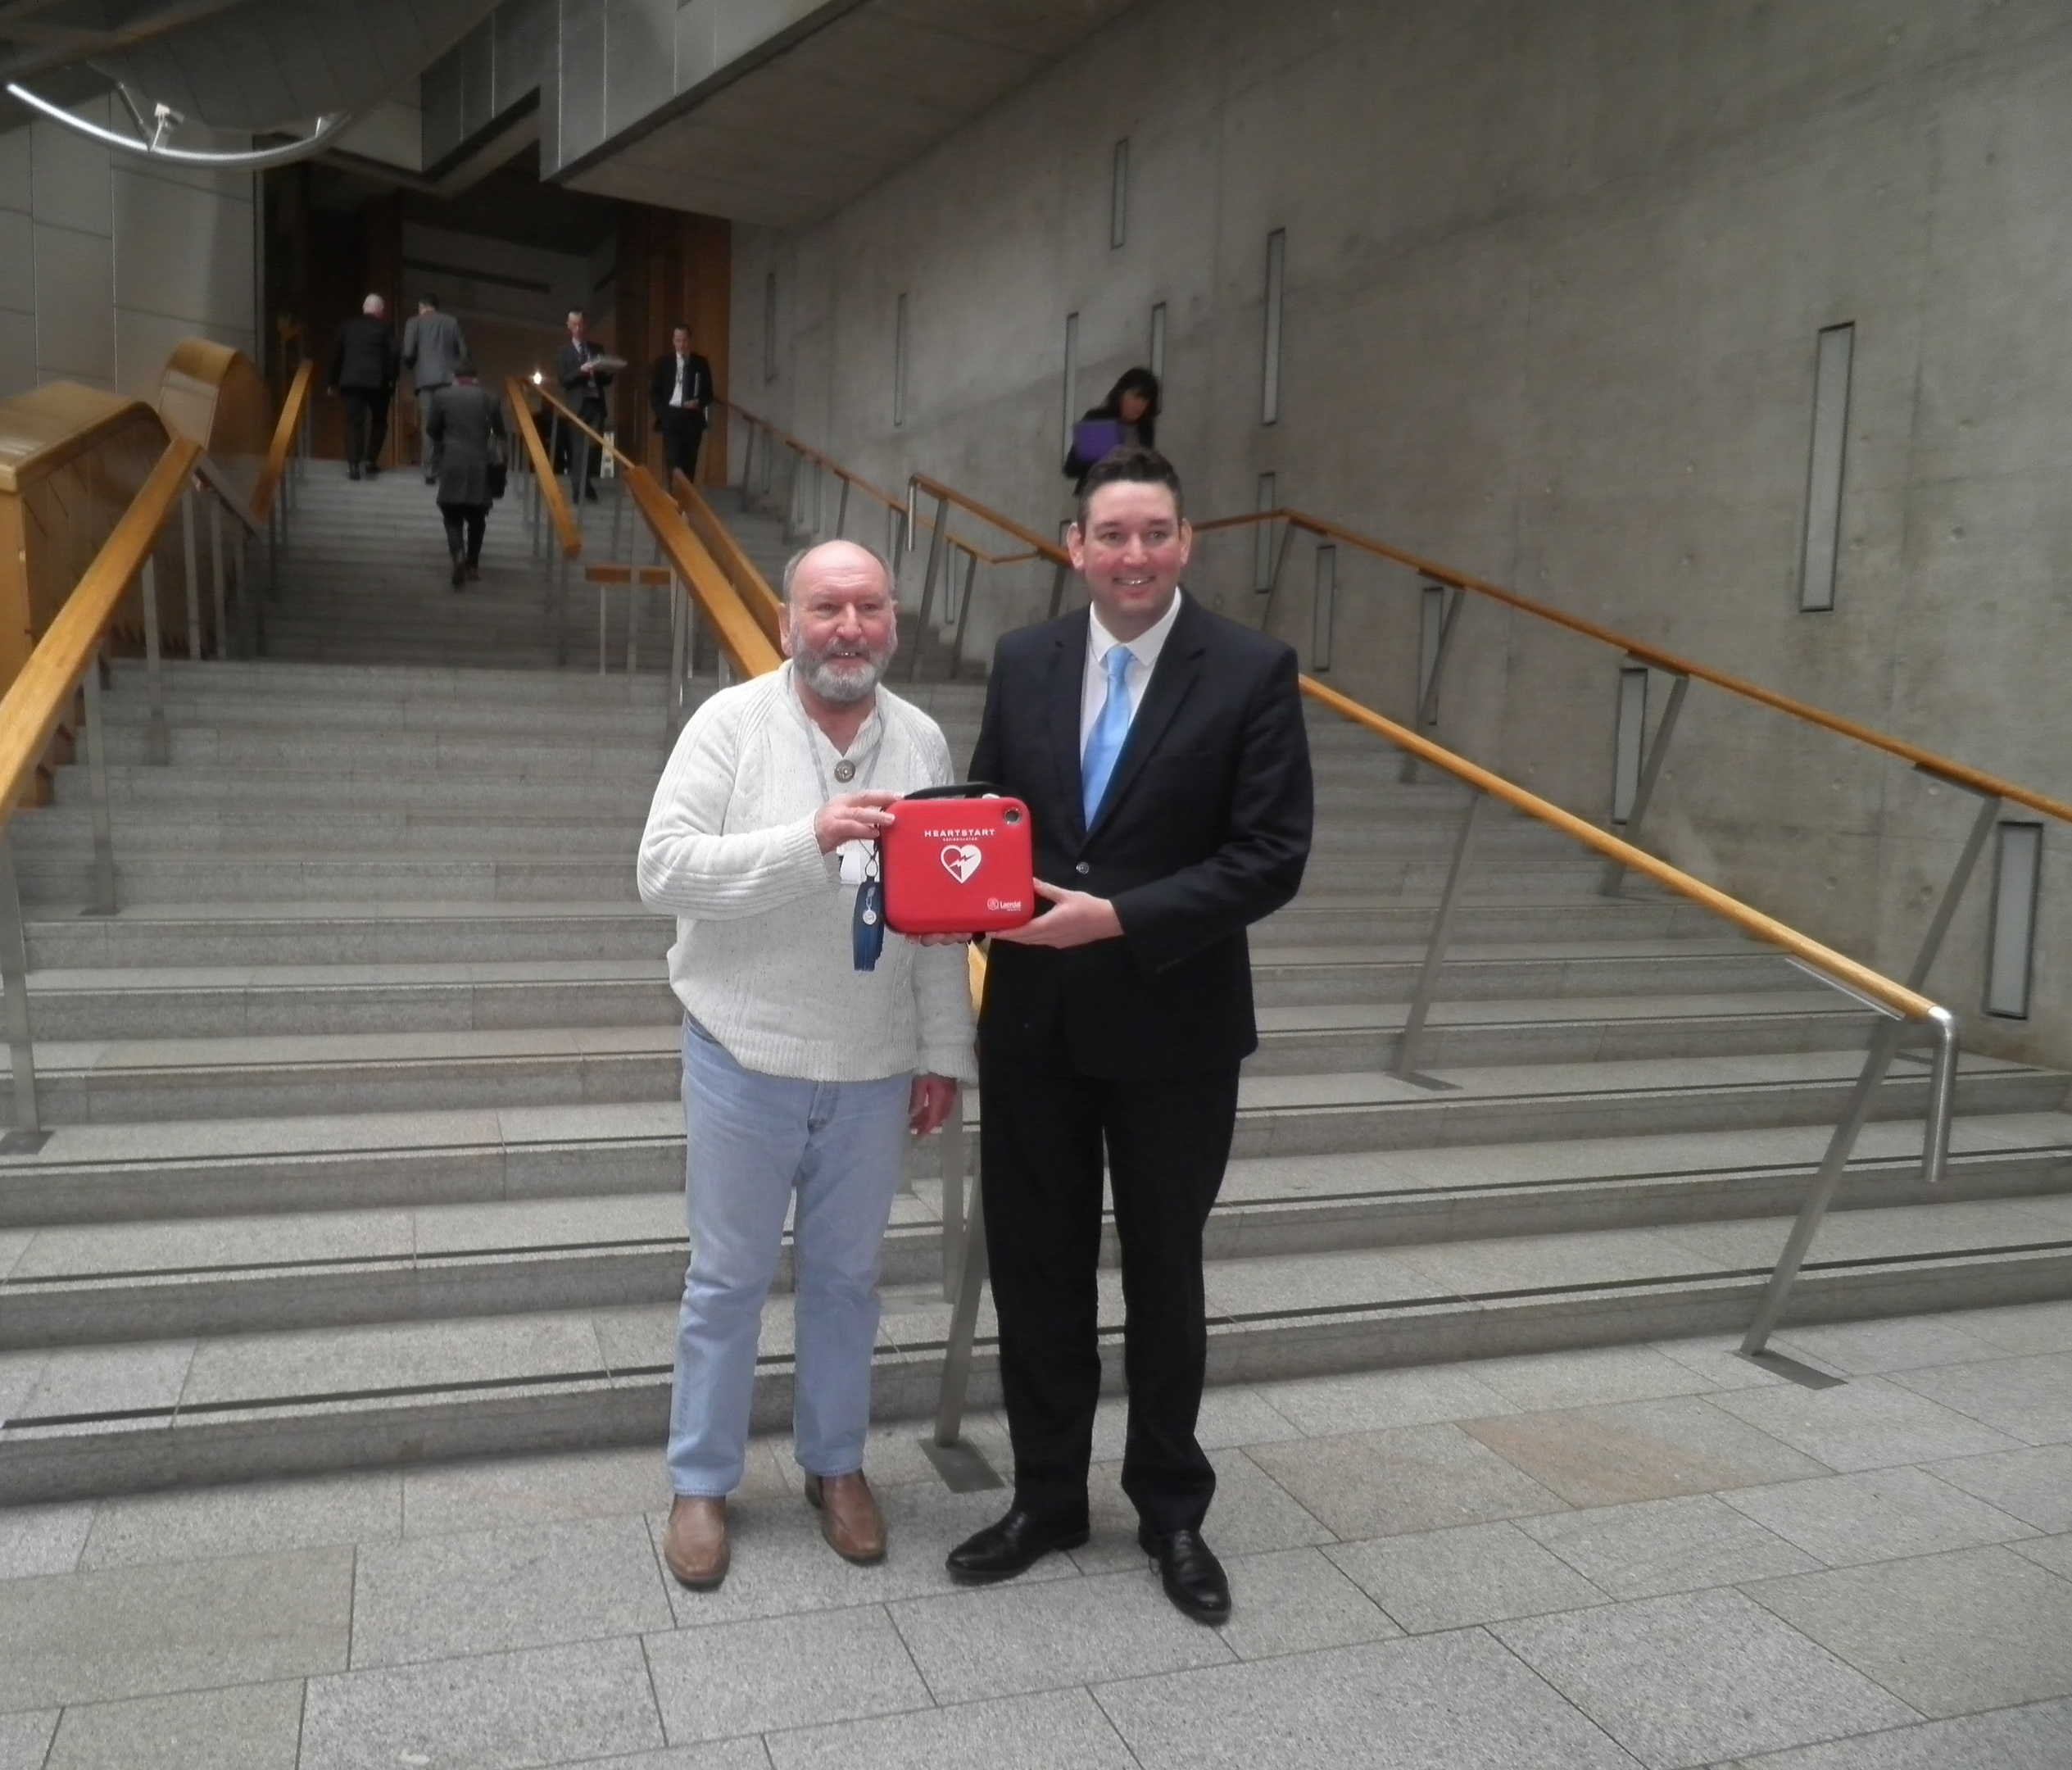 Stonehaven community councillor Phil Mills-Bishop met with Miles Briggs MSP to highlight the need for a Scottish Defibrillator Bill.